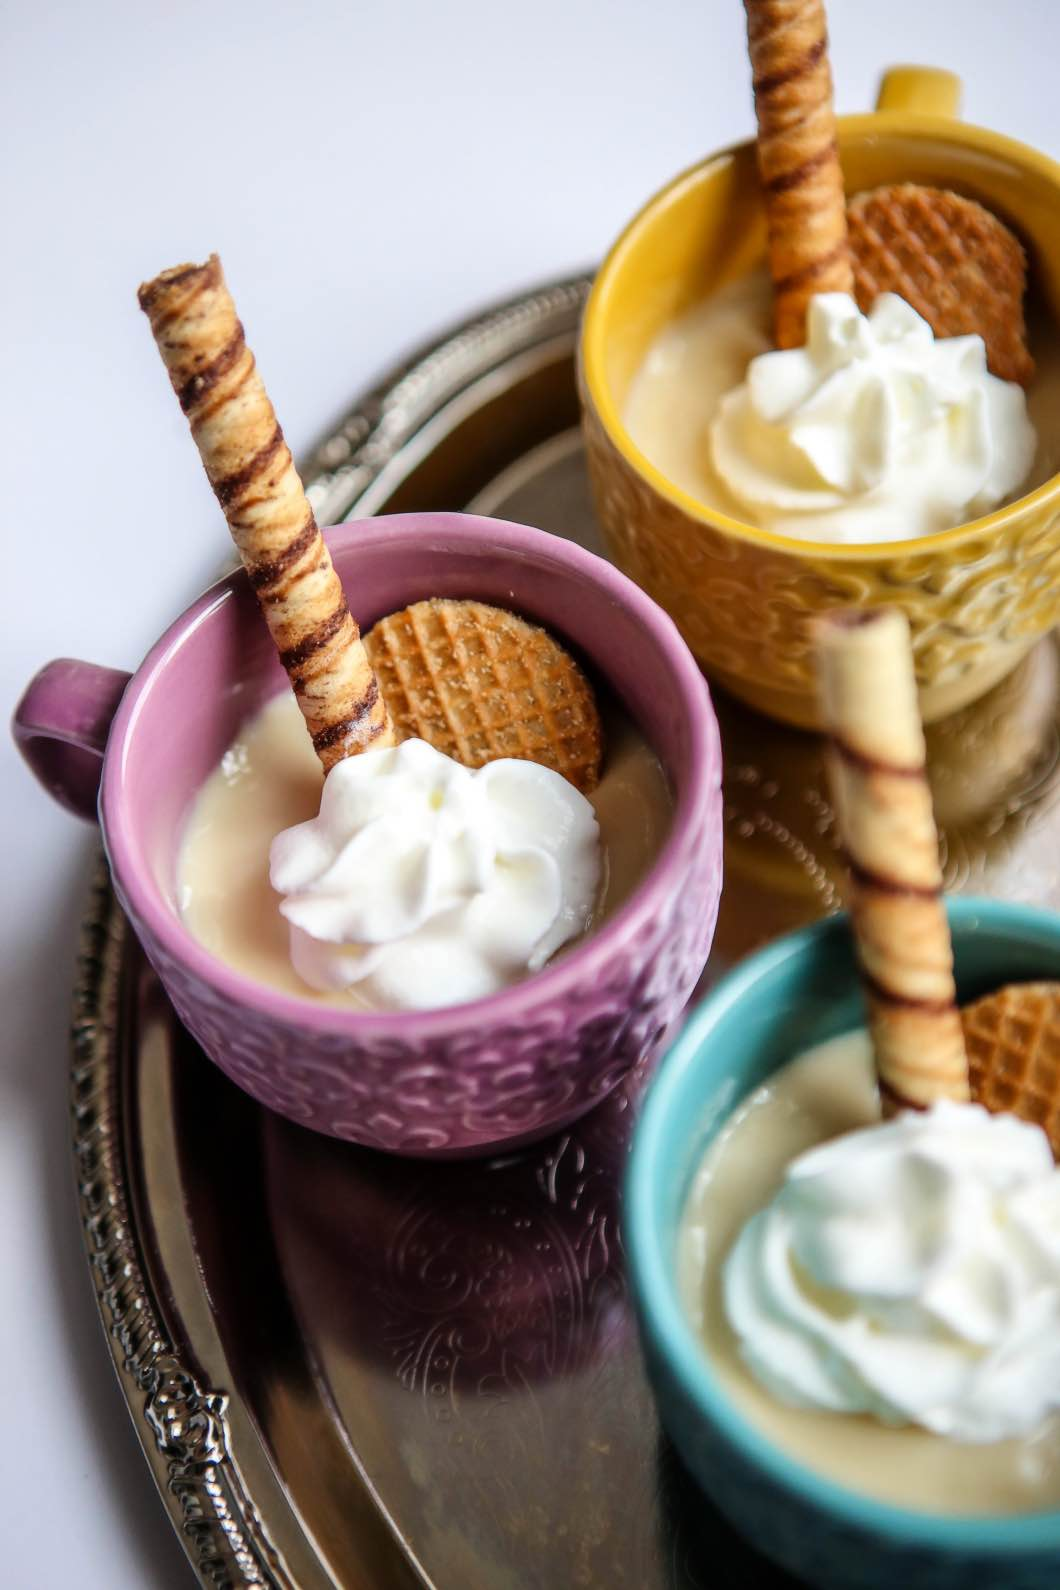 Best Vanilla Pudding Recipe with fairlife ultra-filtered milk by Jessica from Happily Hughes